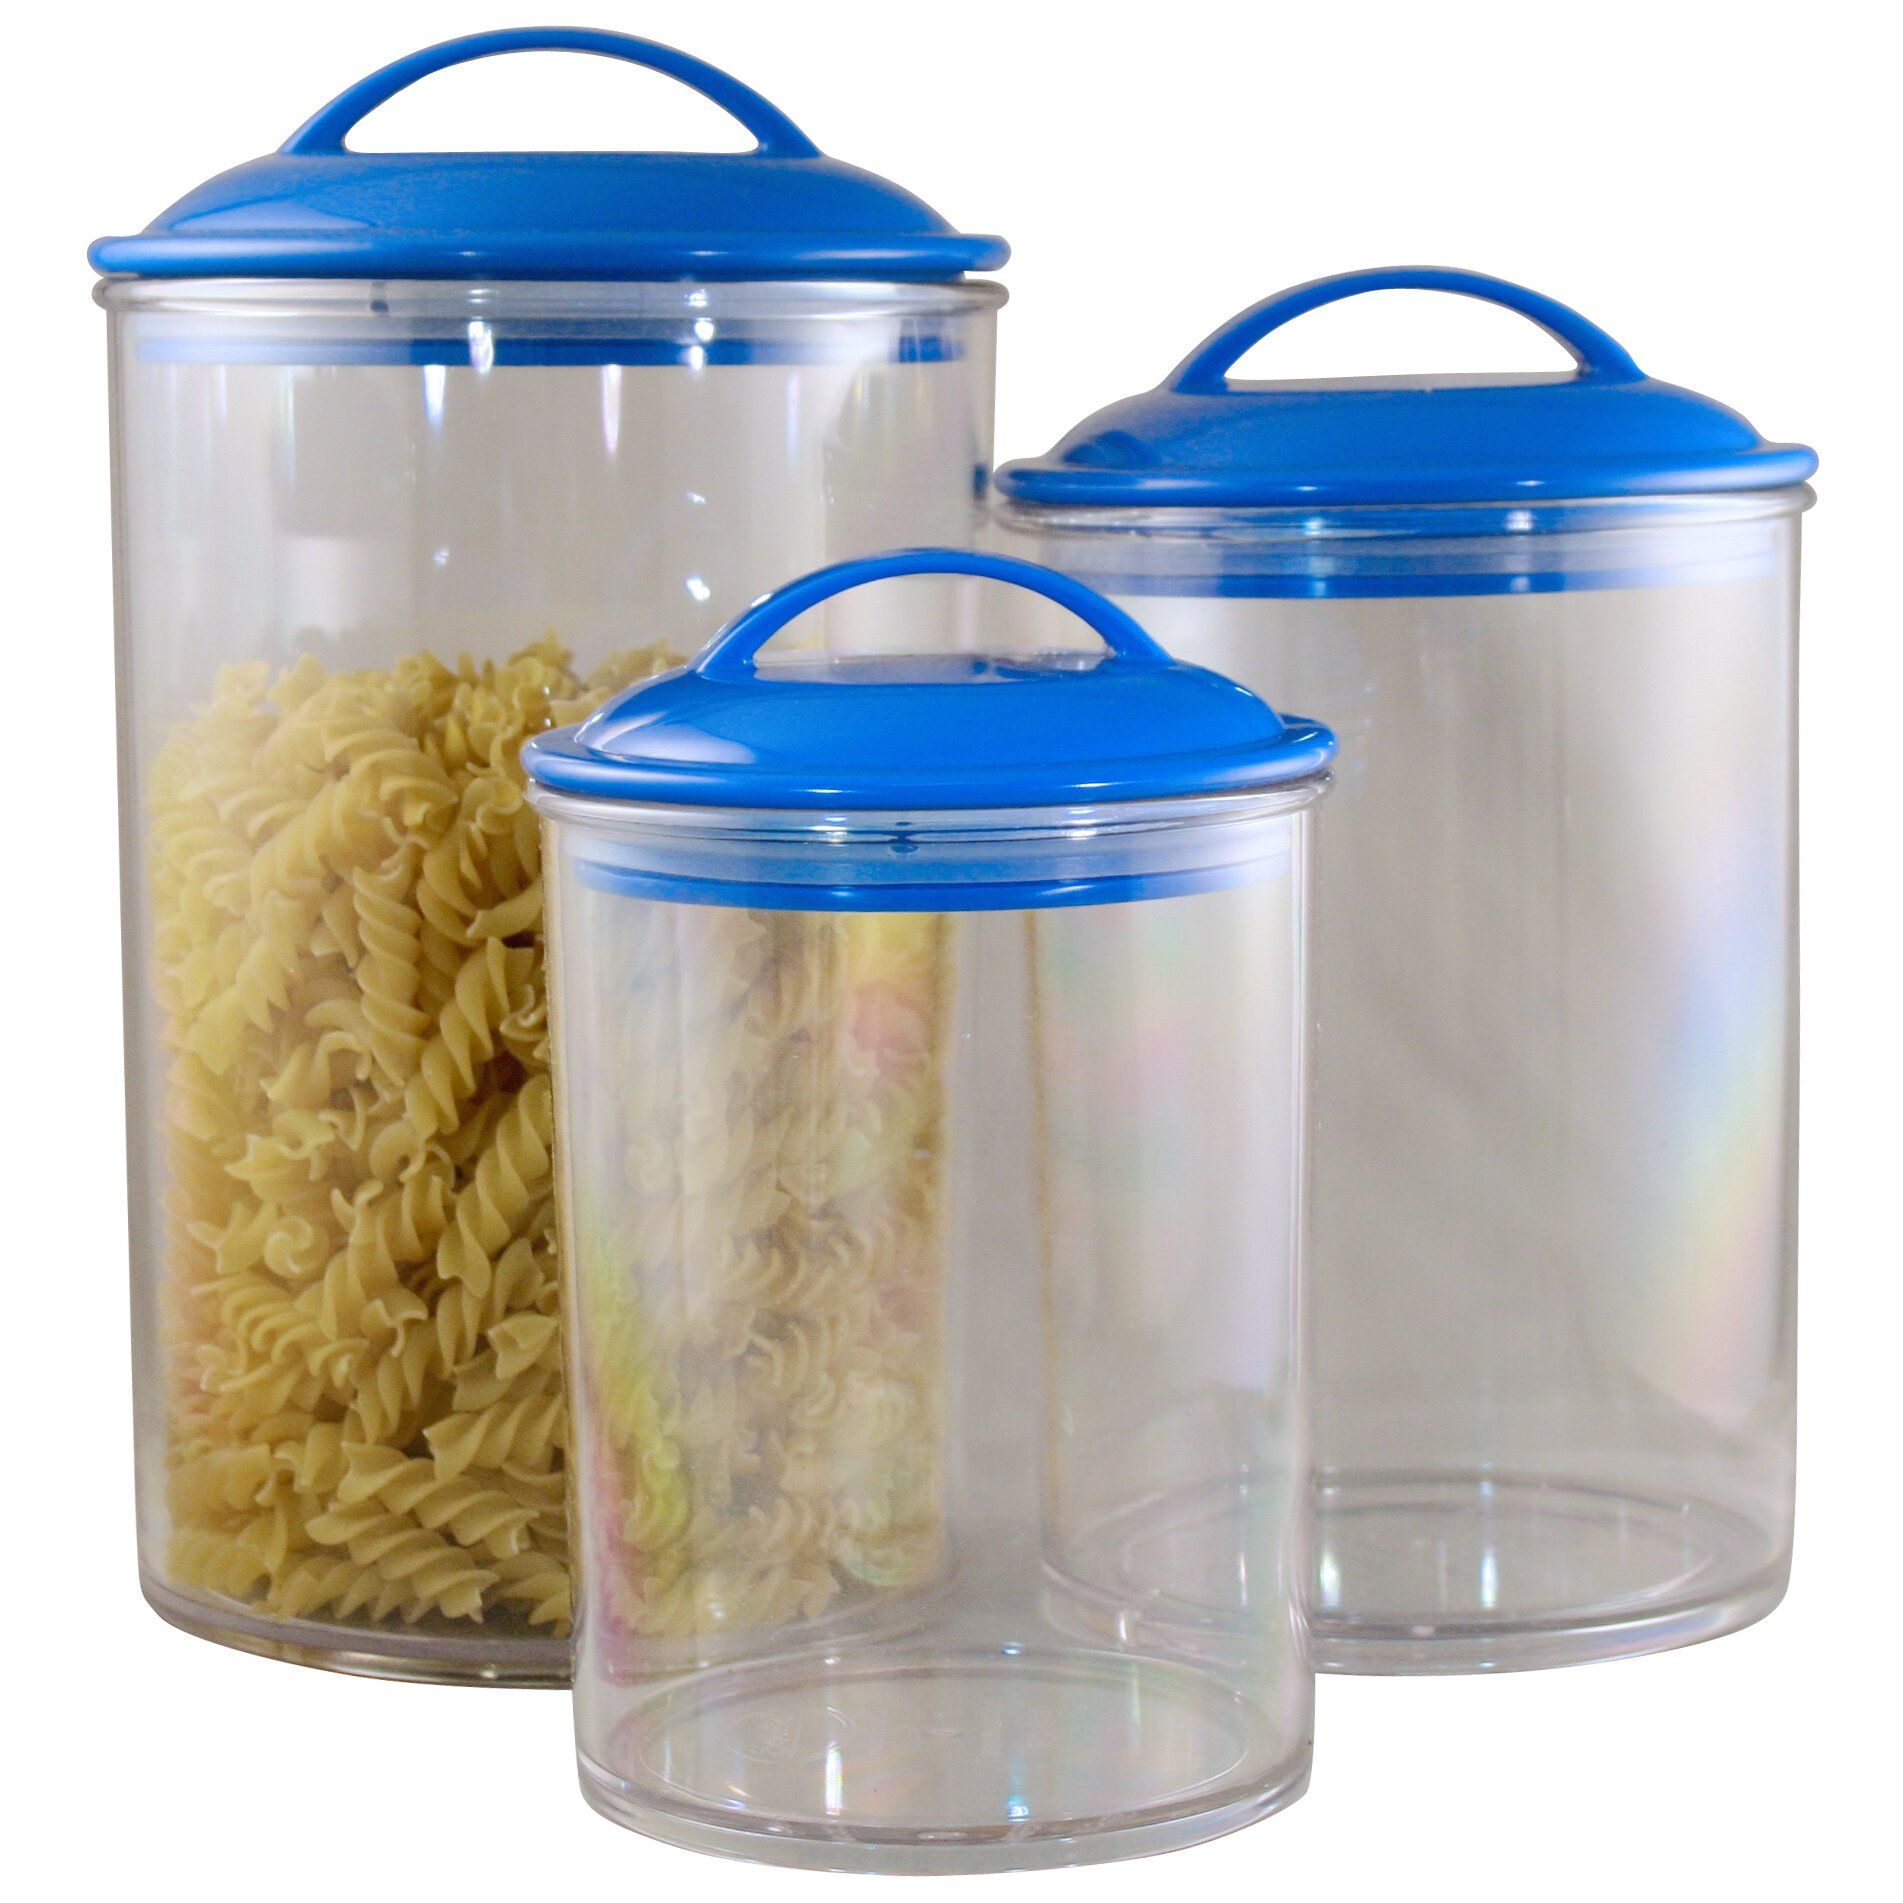 Symple Stuff 3 Piece Acrylic Canister Set & Reviews